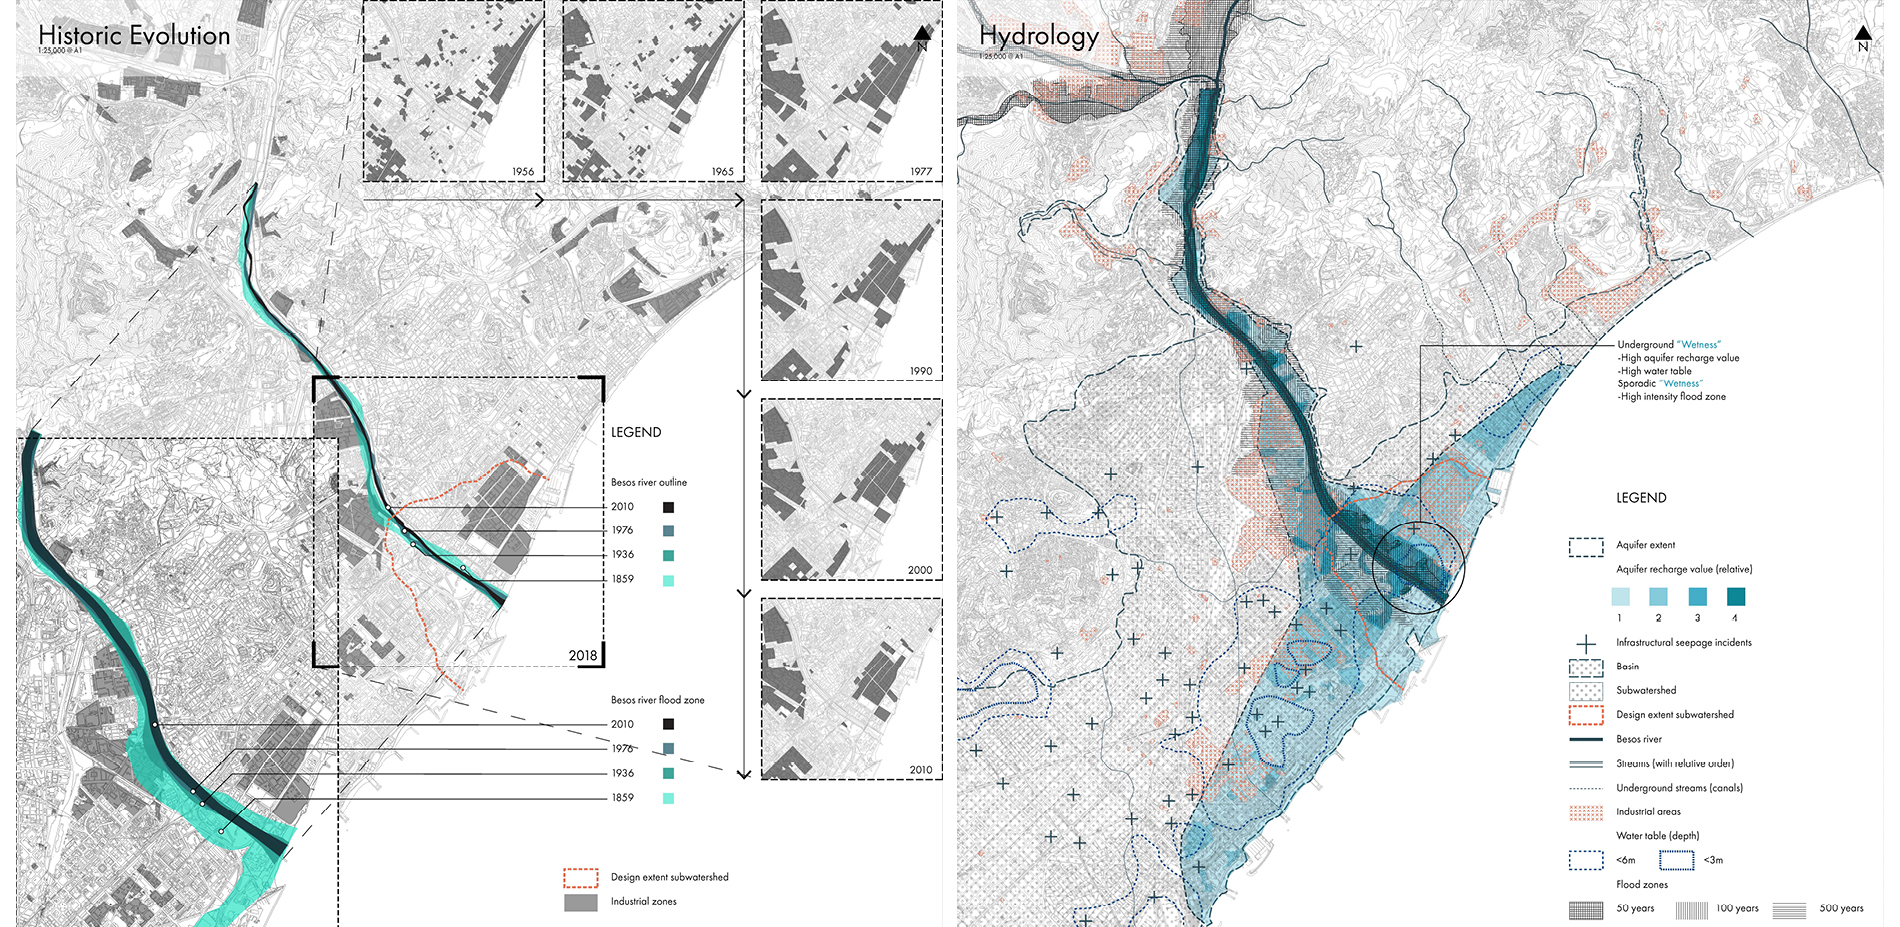 Mapping of Historic Evolution and Hydrology